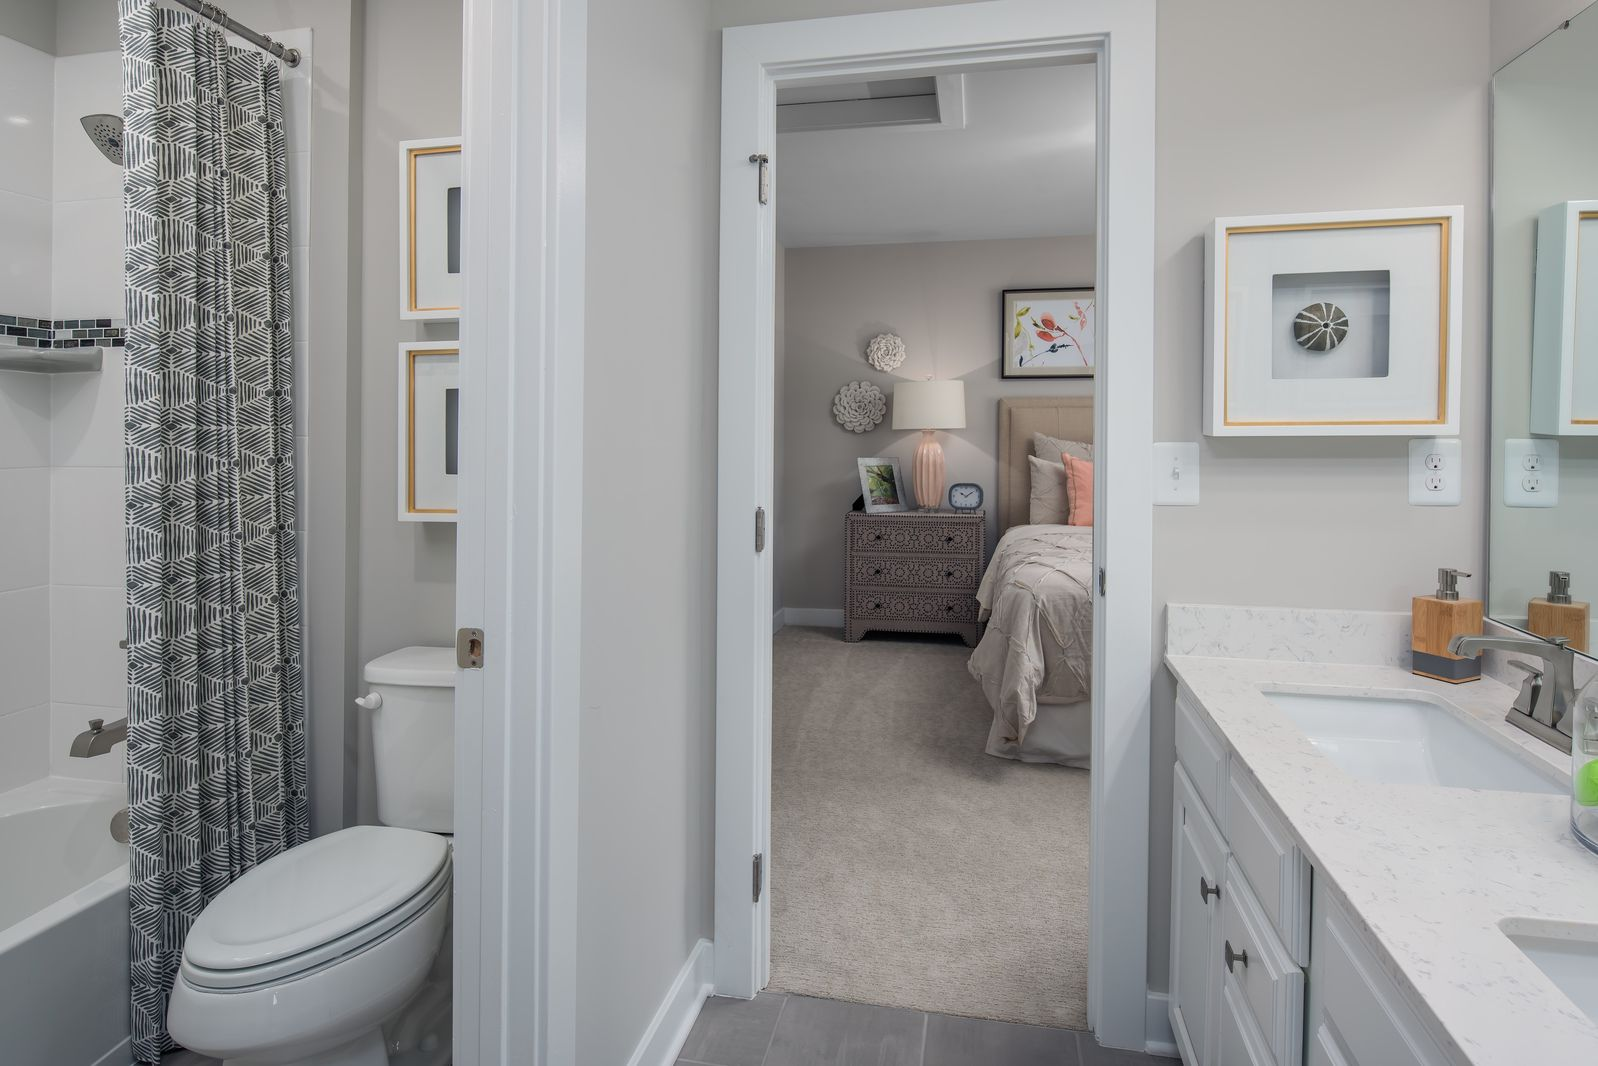 Bathroom featured in the Landon By Ryan Homes in Washington, MD